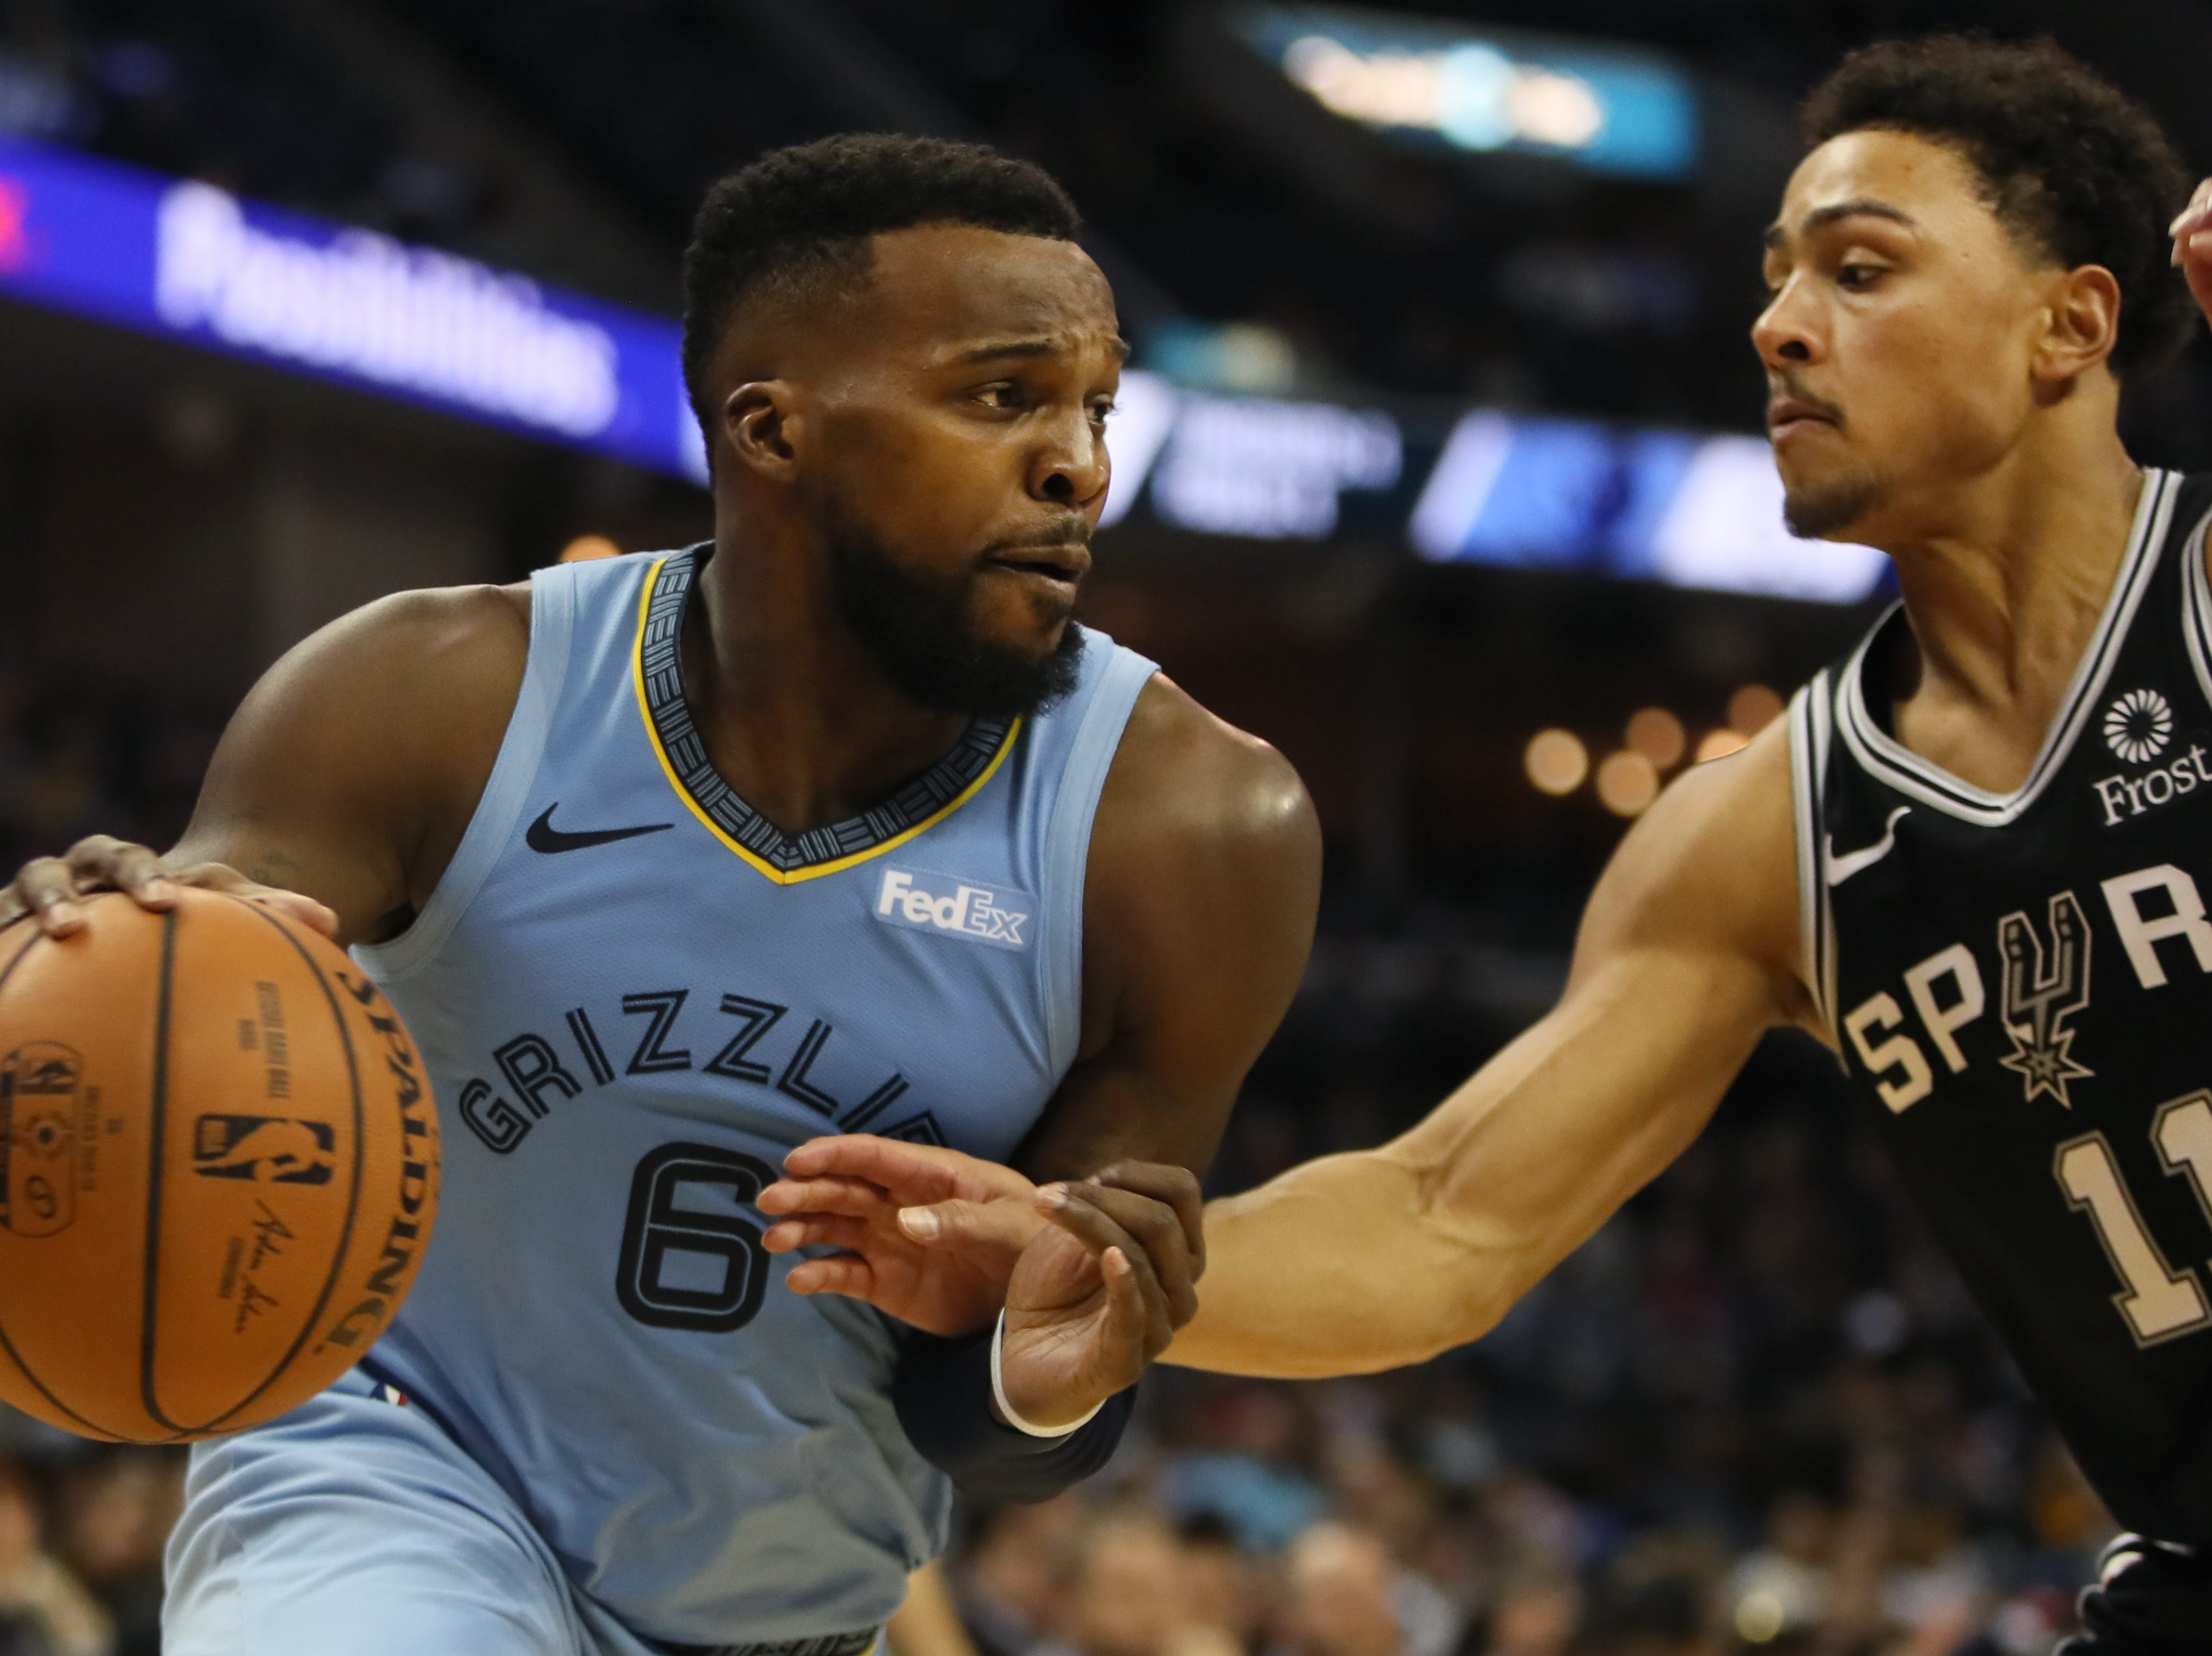 Memphis Grizzlies guard Shelvin Mack drives past shoots the ball over San Antonio Spurs defender 	Bryn Forbes during their game at the FedExForum on Wednesday, Jan. 9, 2019.